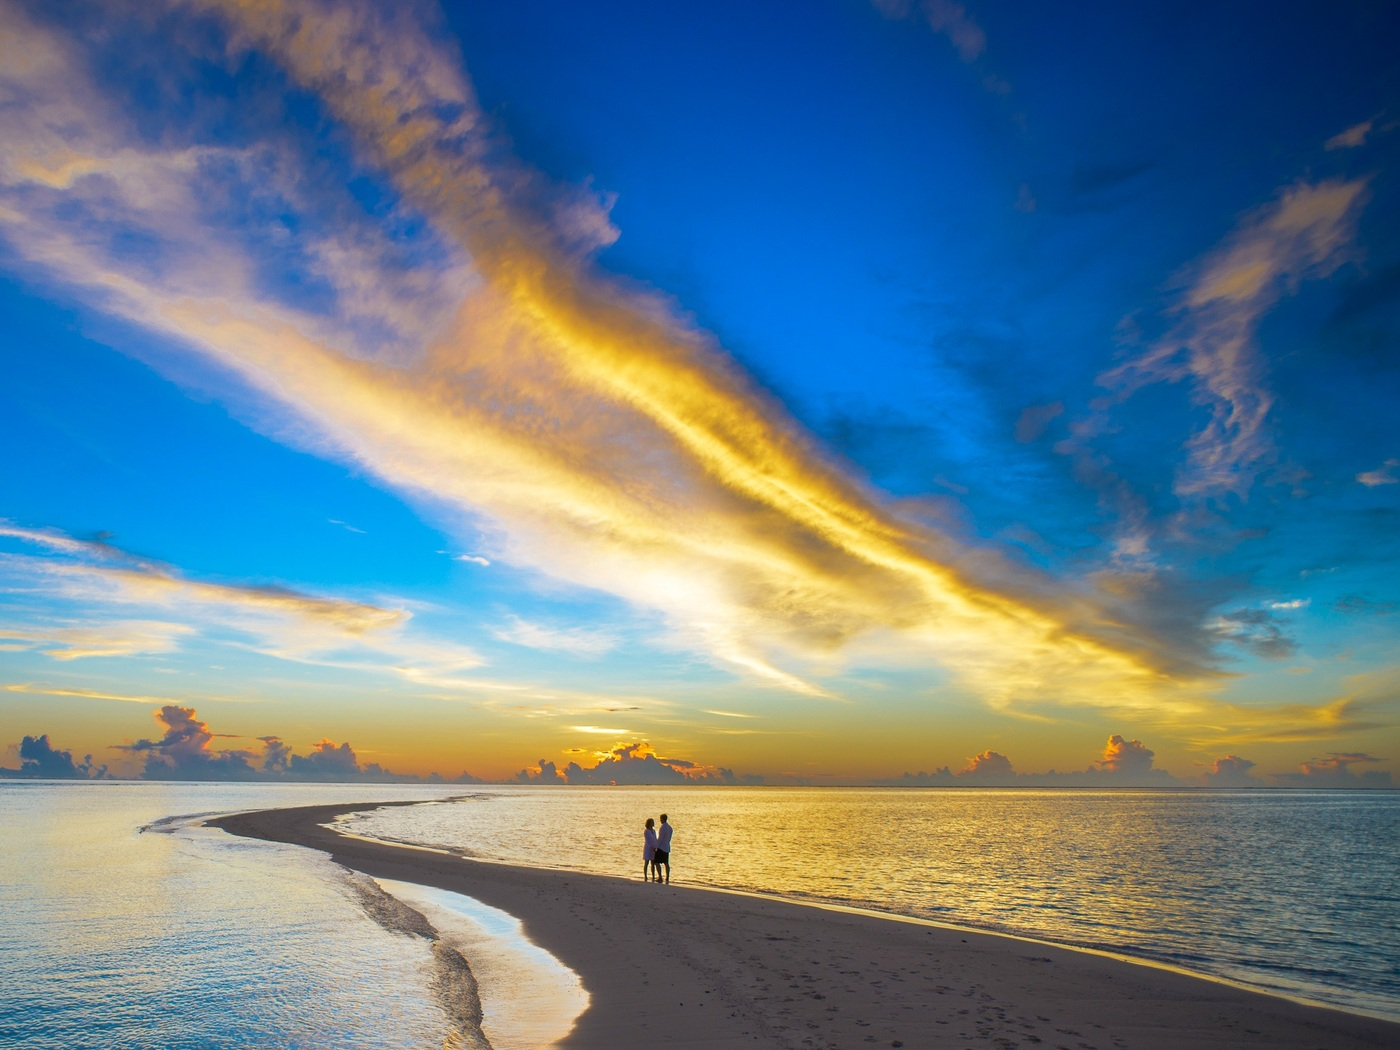 sunset-couple-cloud-island-beach-xn.jpg